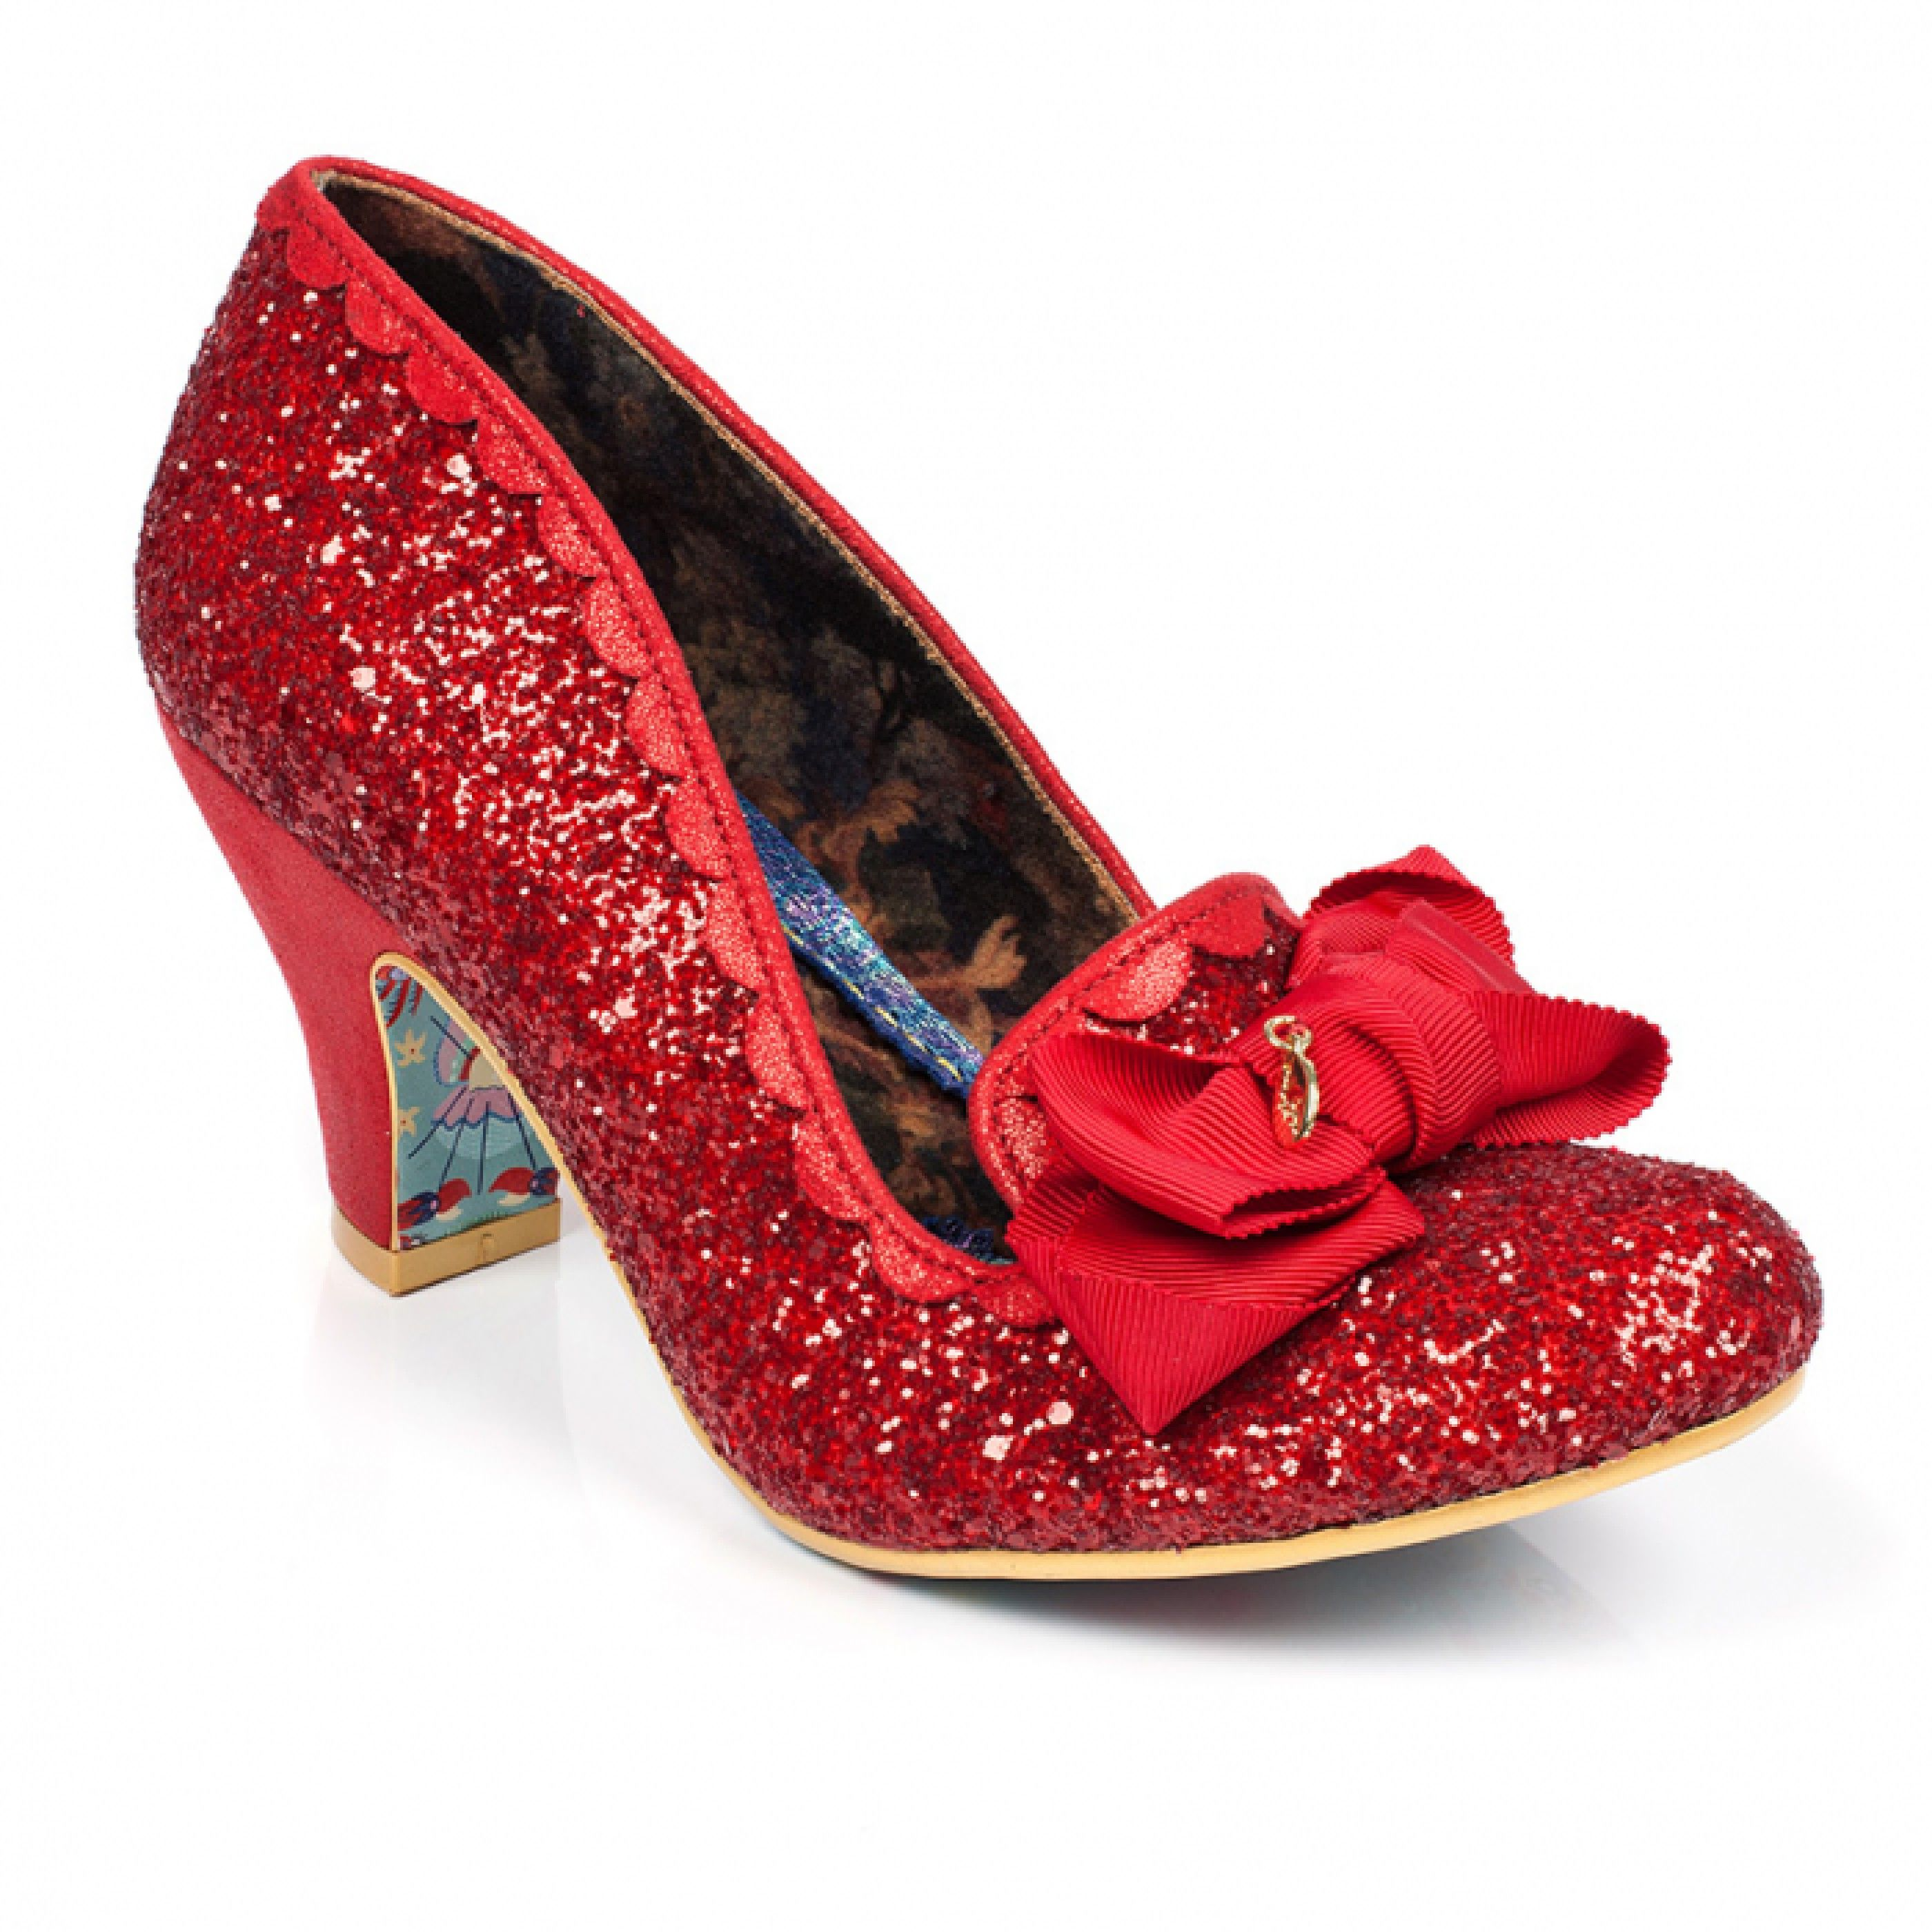 c8280680d5428 Kanjanka | Wizard of Oz rainbow | Shoes, Bow heels, Red glitter shoes